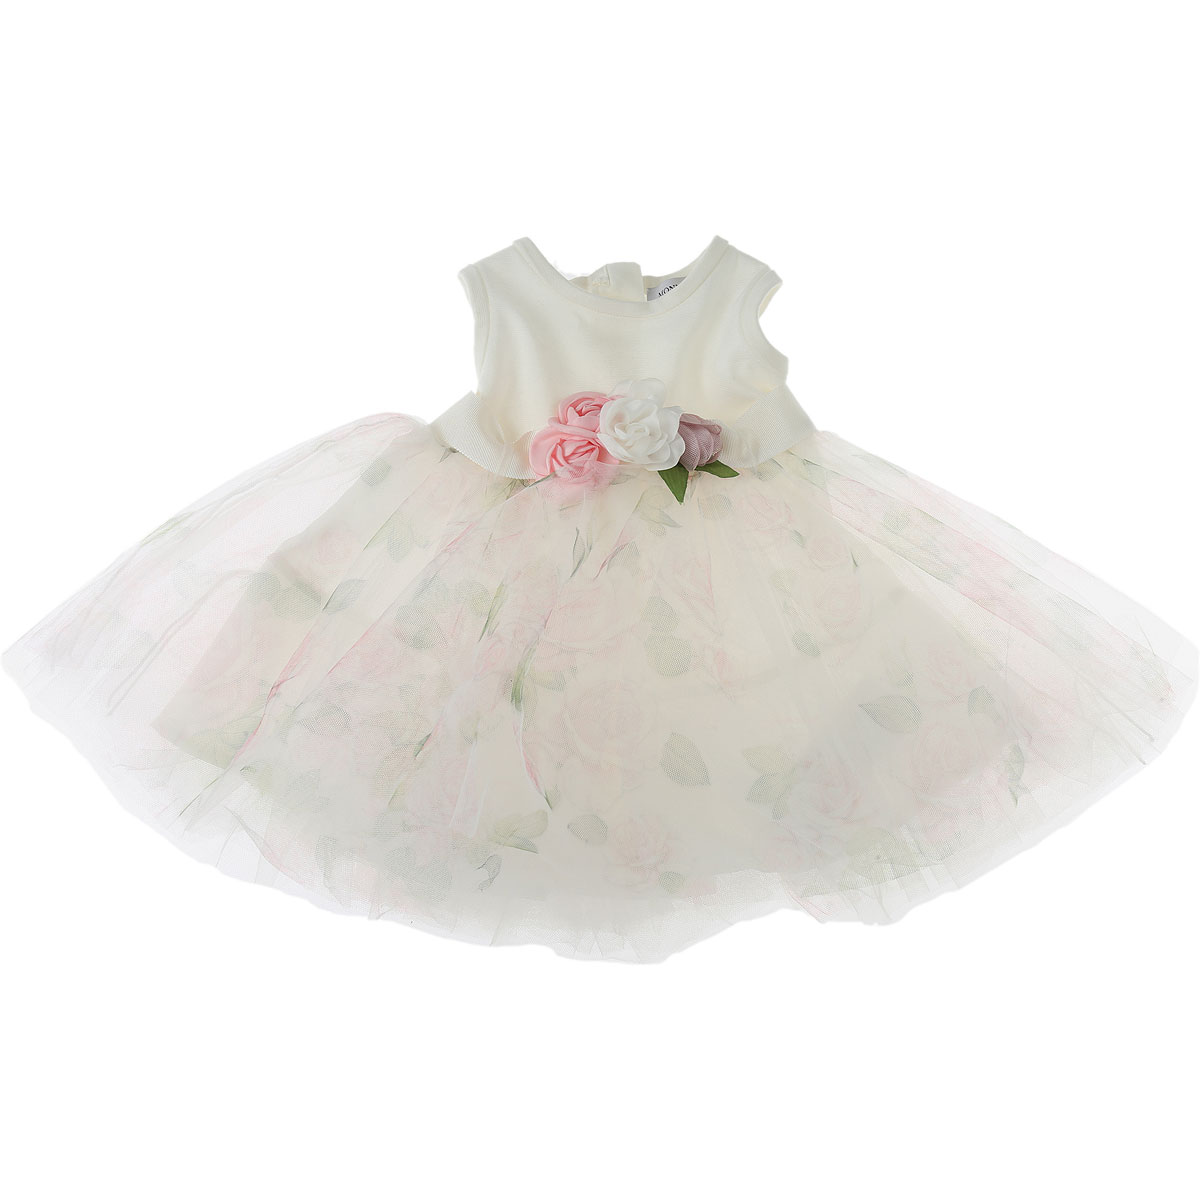 Monnalisa Baby Dress for Girls On Sale, White, polyester, 2019, 12M 18M 2Y 3Y 6M 9M